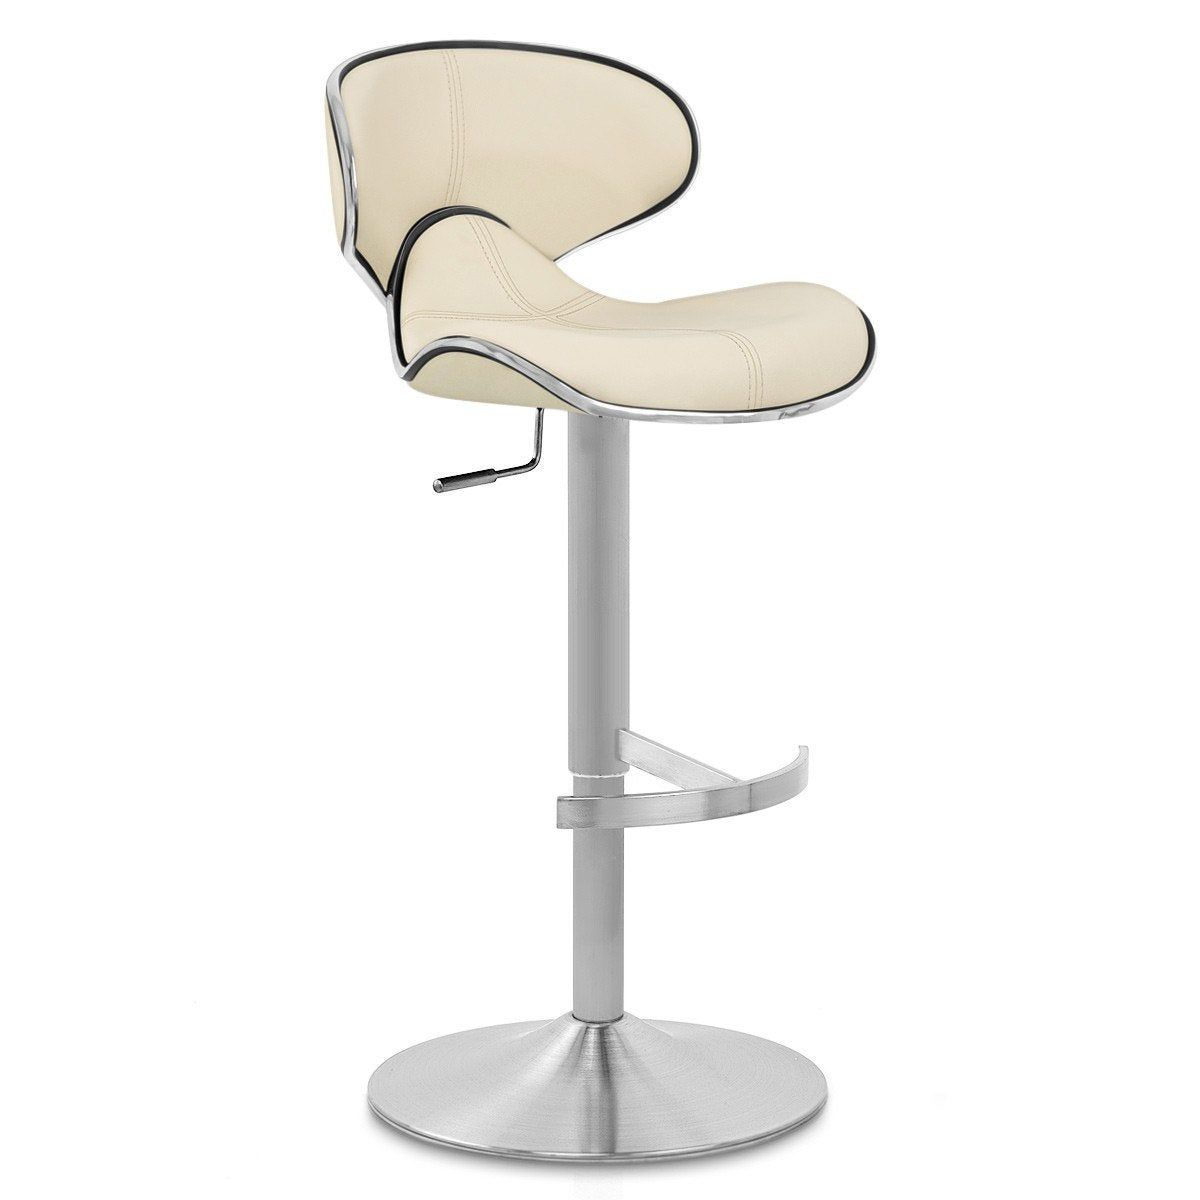 Tabouret De Bar Design Cuir Crème Felix Mdt Products En